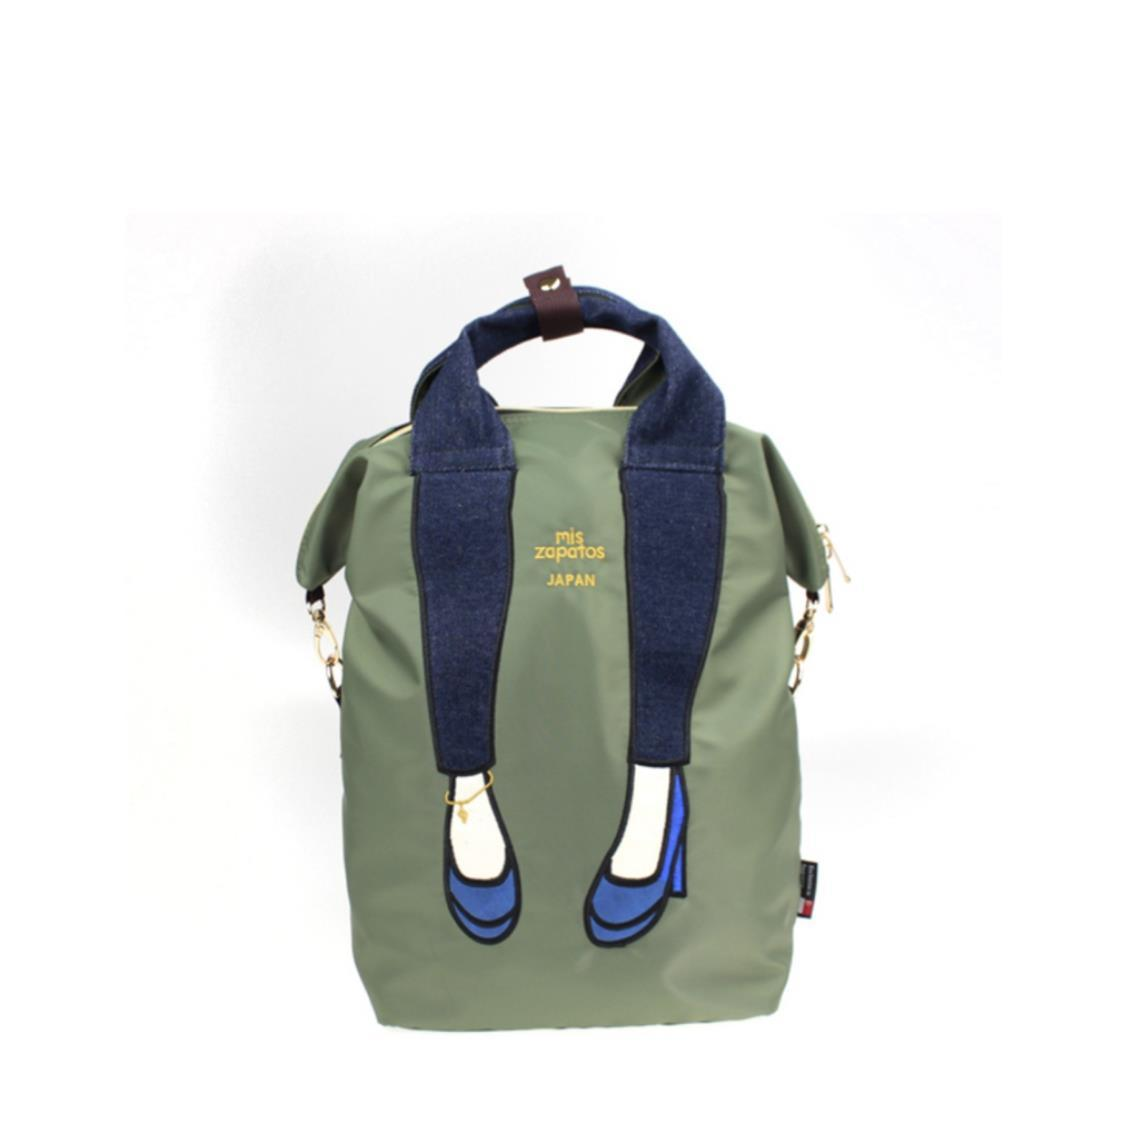 3-Way Jeans with High Heels Backpack Exclusive In Singapore Khaki